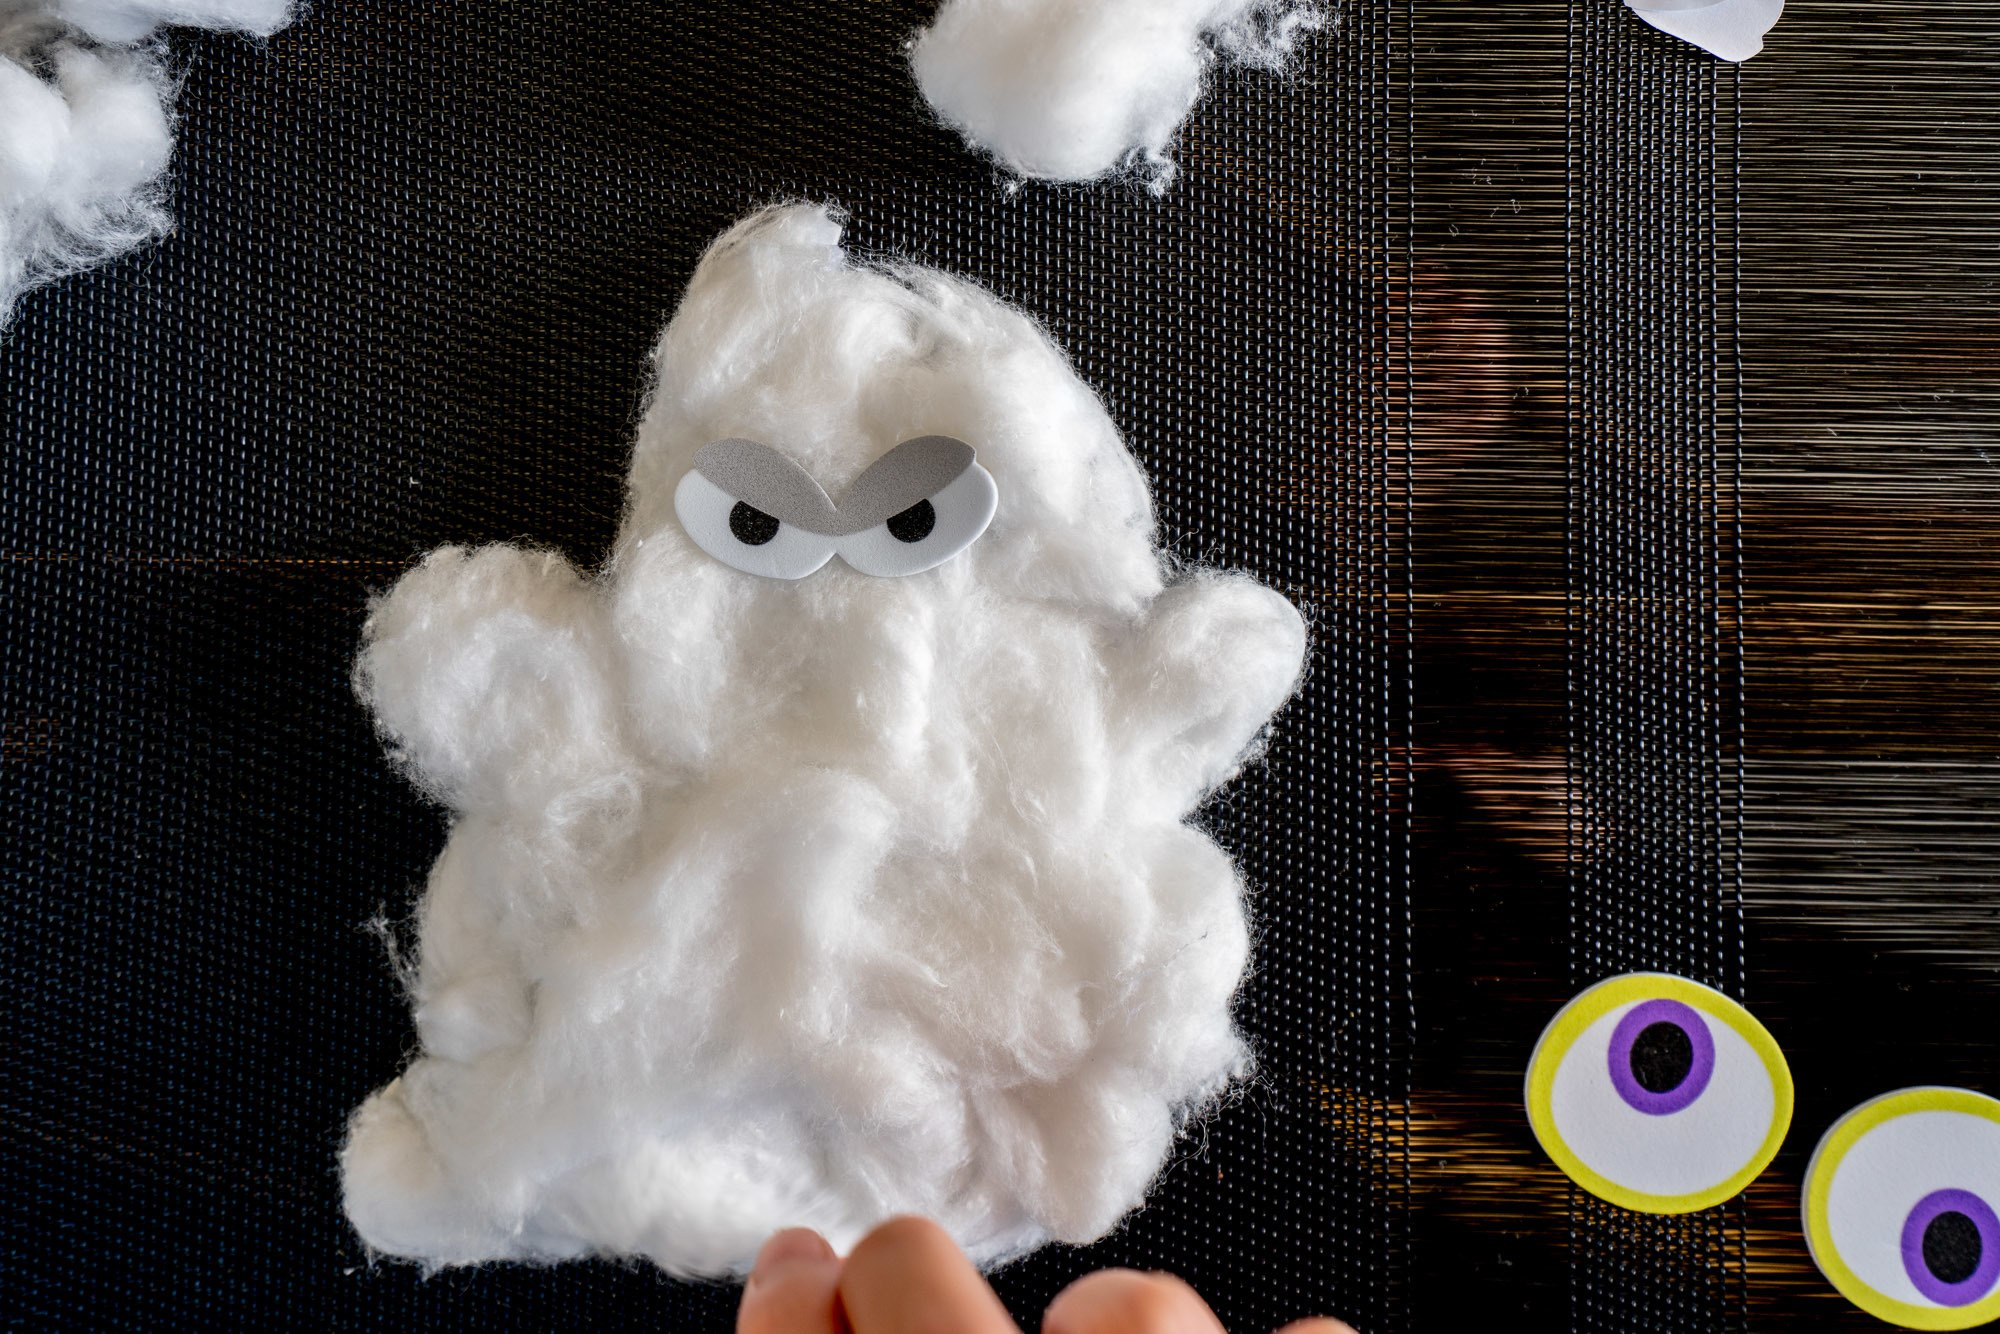 An easy Halloween craft is to make cotton ball ghosts.